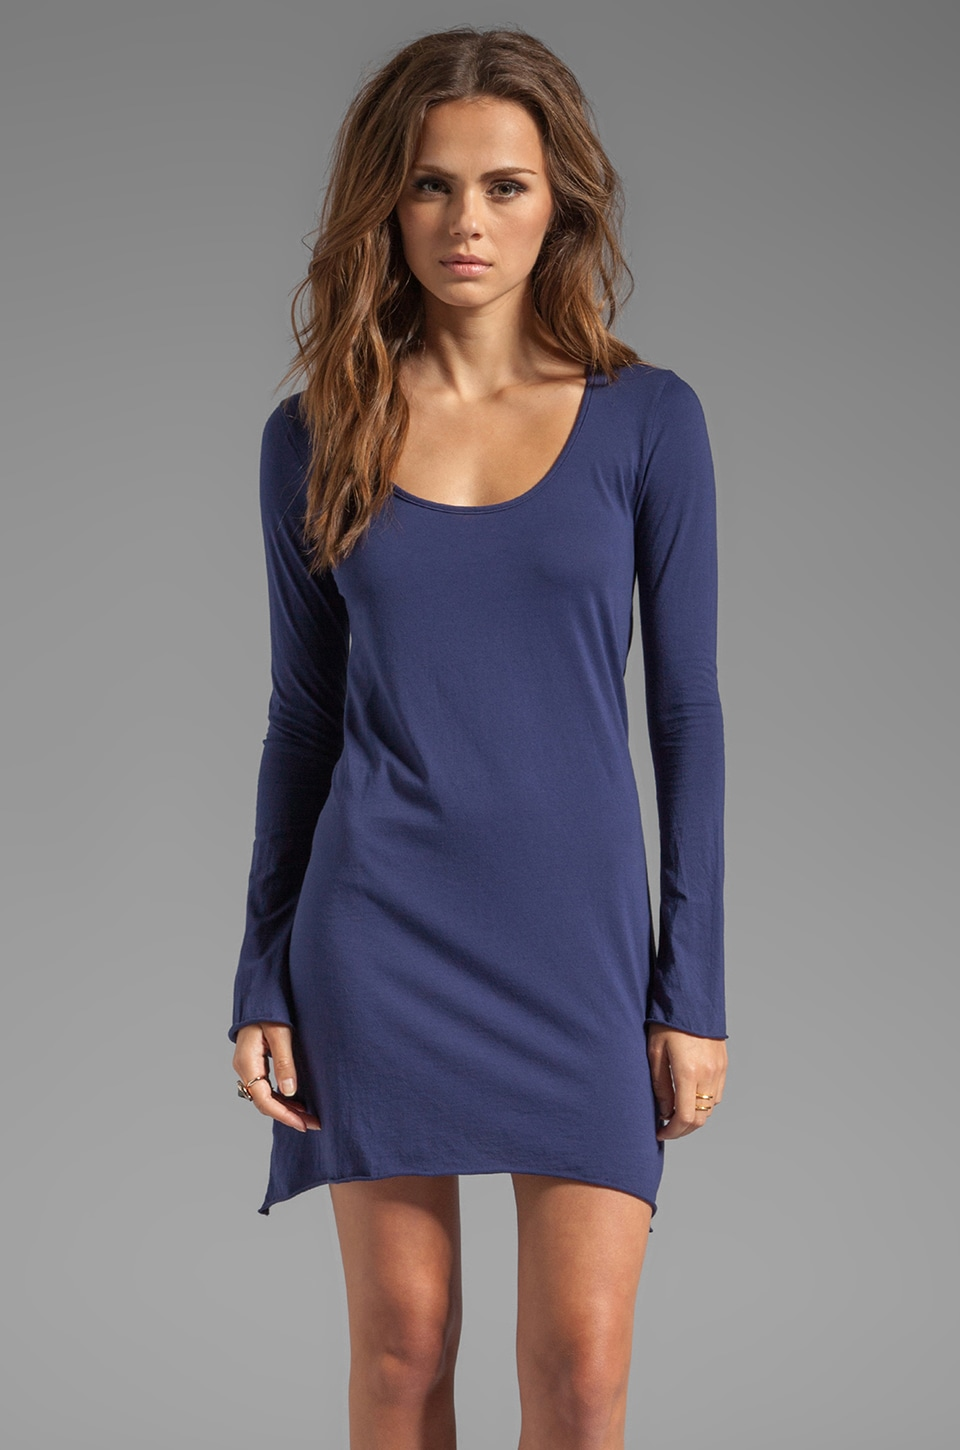 Bobi Supreme Jersey Long Sleeve Dress in Rider